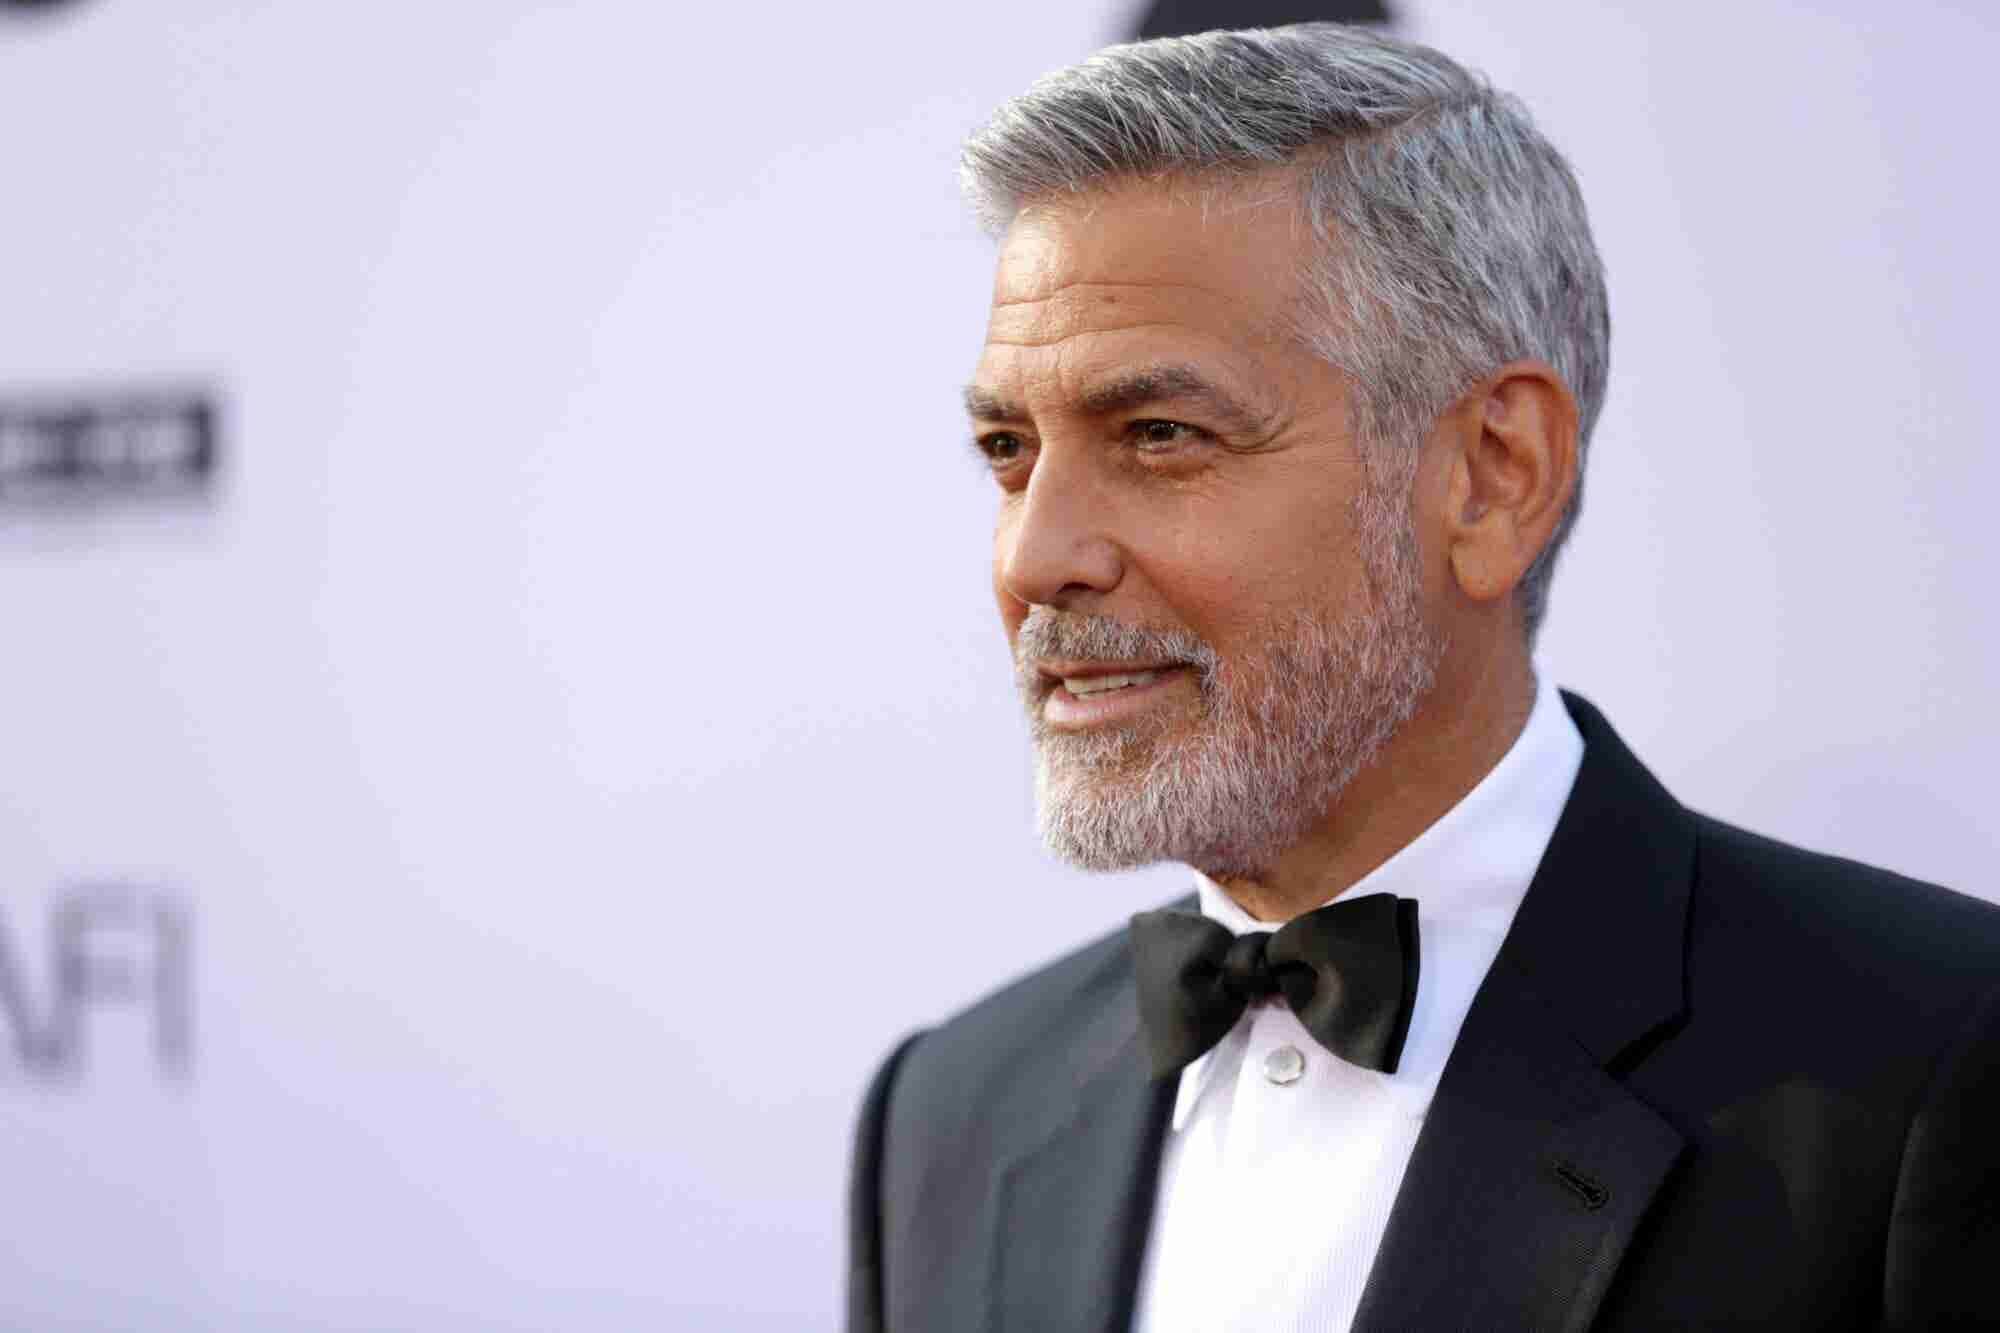 8 Inspirational George Clooney Quotes on Leadership, Failure and Staying Humble